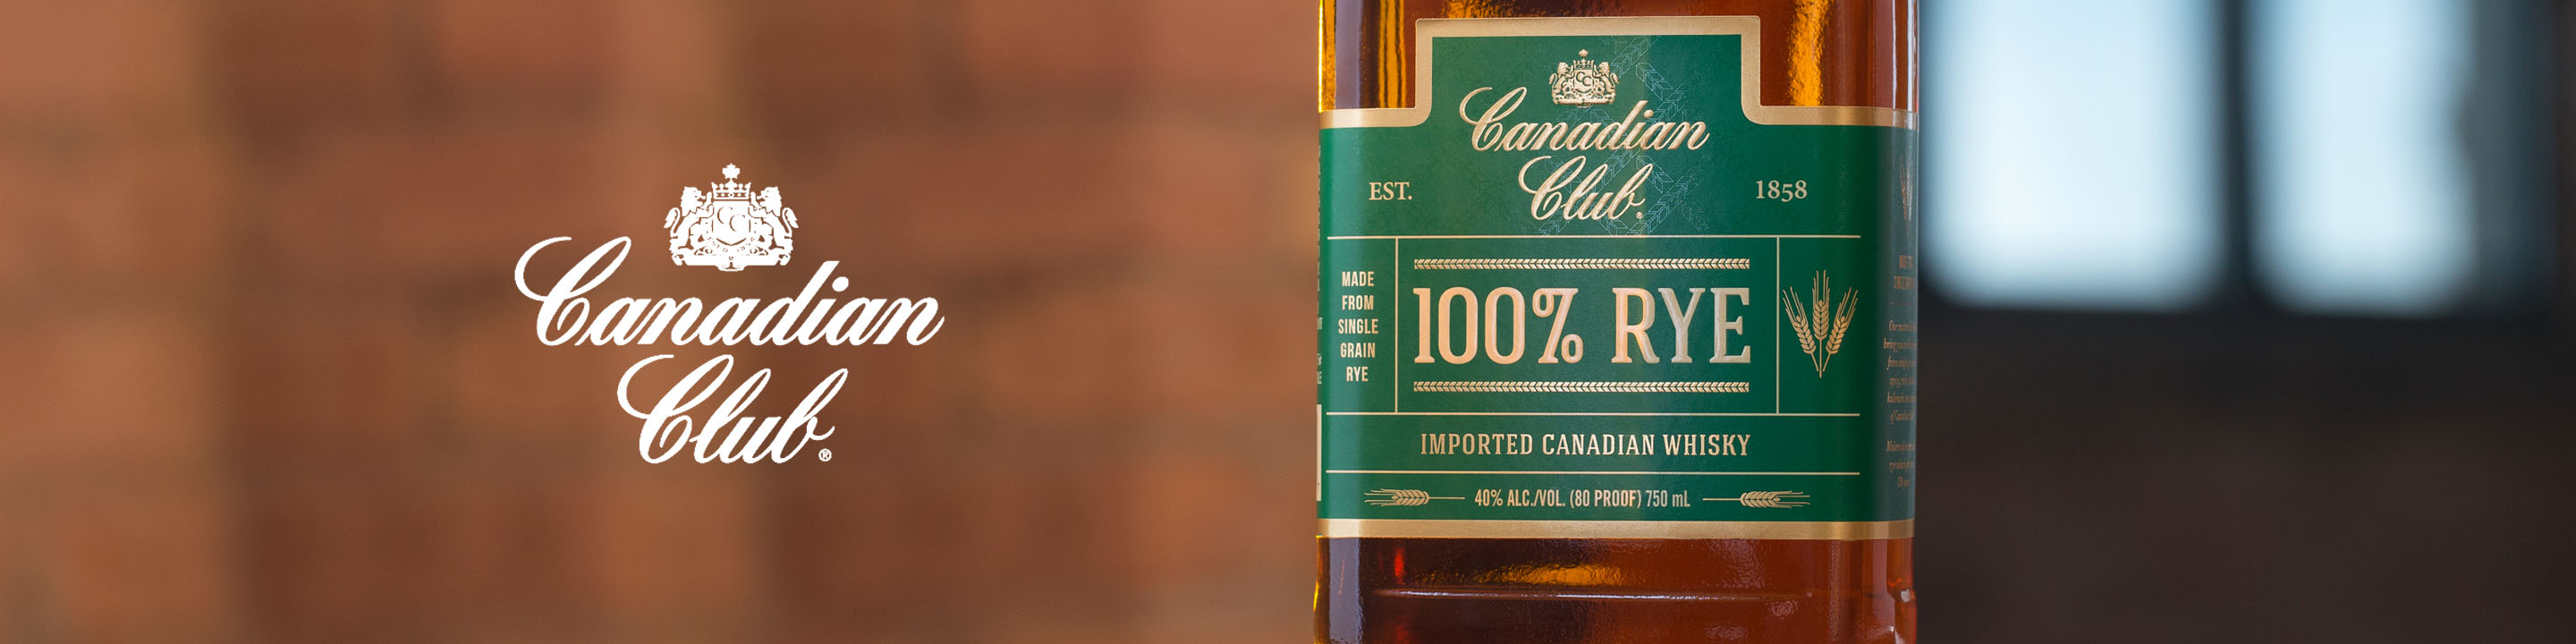 For more than 150 years, Canadian Club has been known worldwide as smooth, versatile and easy to enjoy. Buy Canadian Club online now from nearby liquor stores via Minibar Delivery.